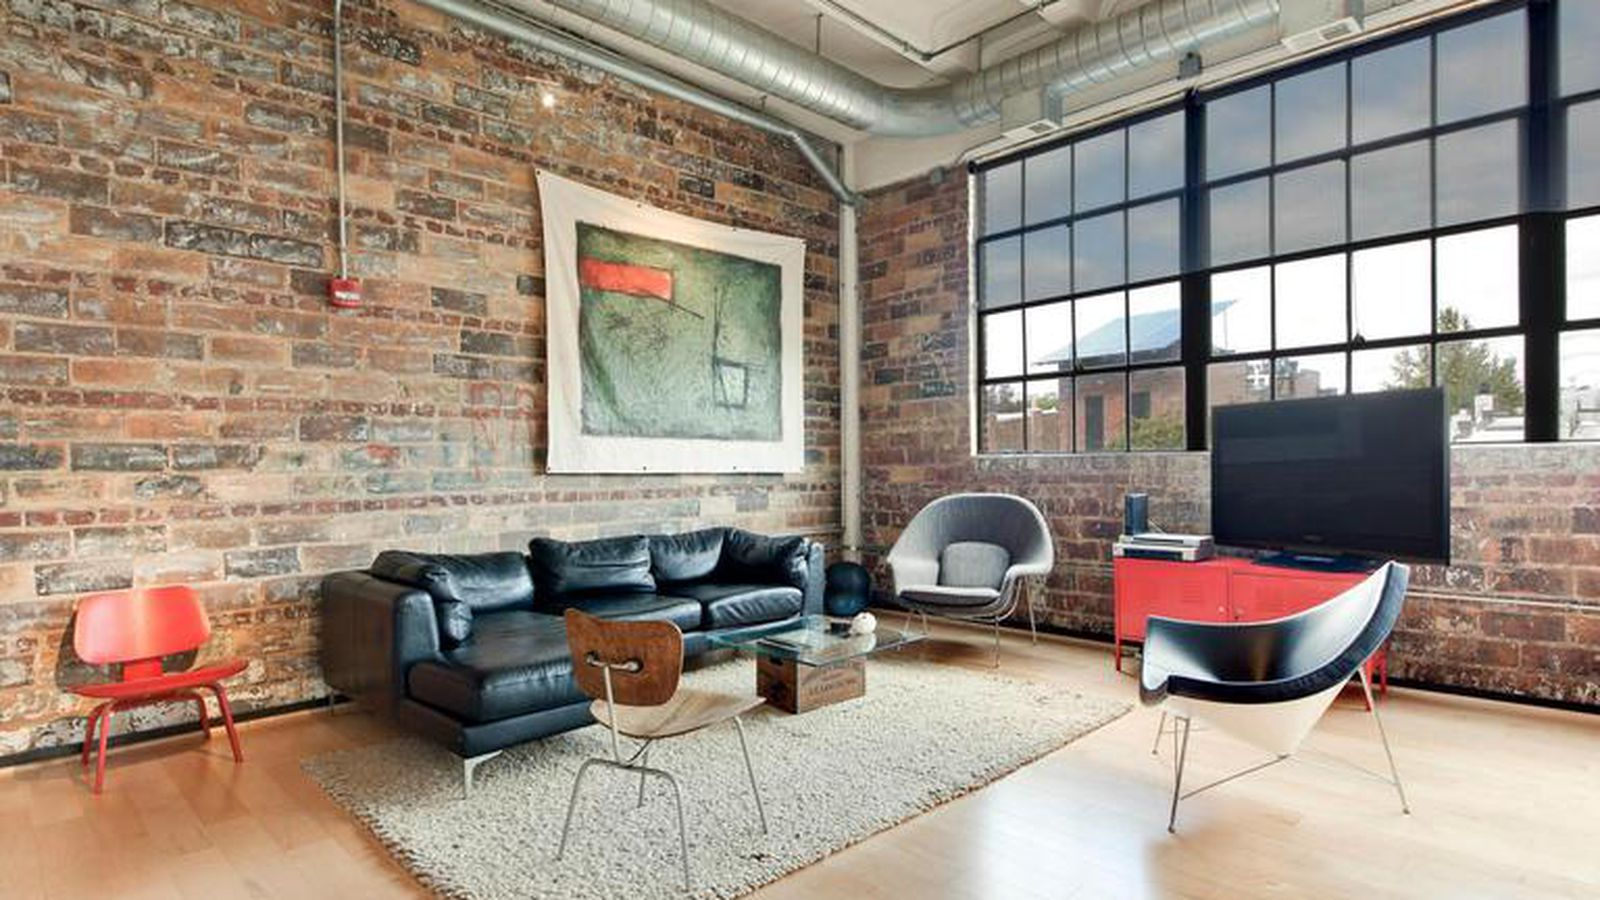 D c 39 s next best bachelor pad landed on the market for 915k curbed dc - A loft apartment bachelor pad ...